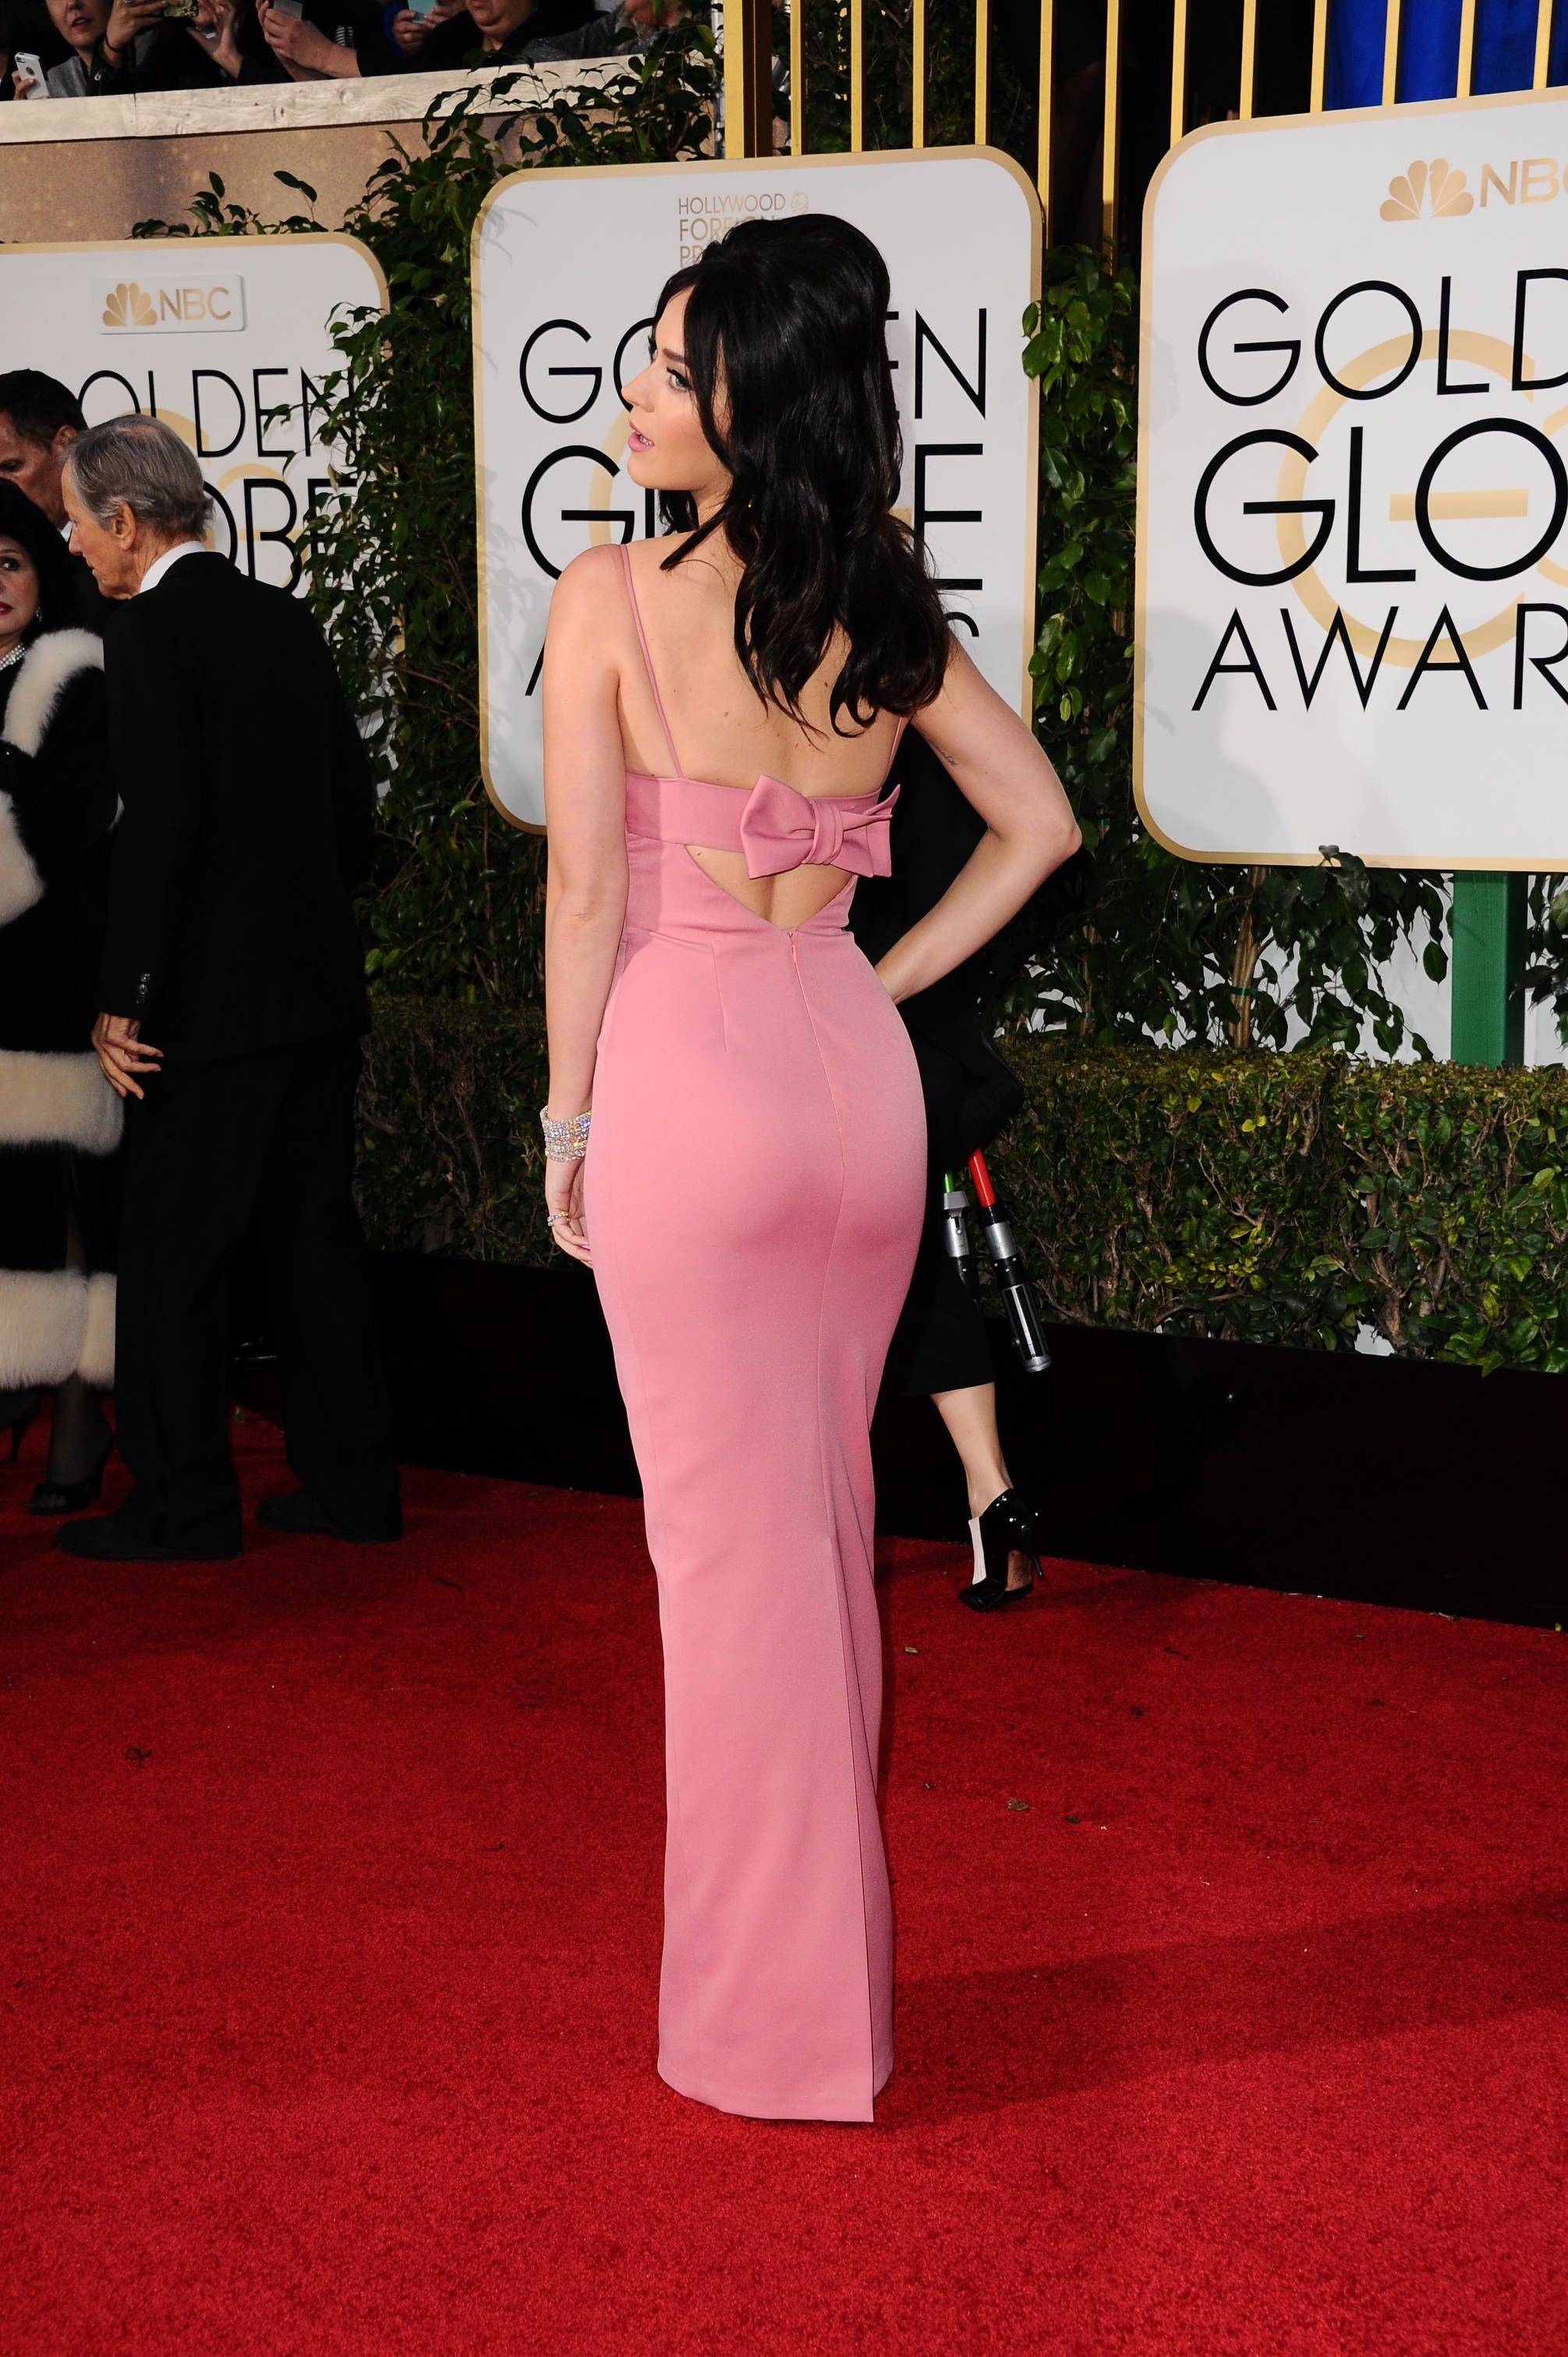 Katy Perry wearing Prada gown at the 73rd Annual Golden Globe Awards ...